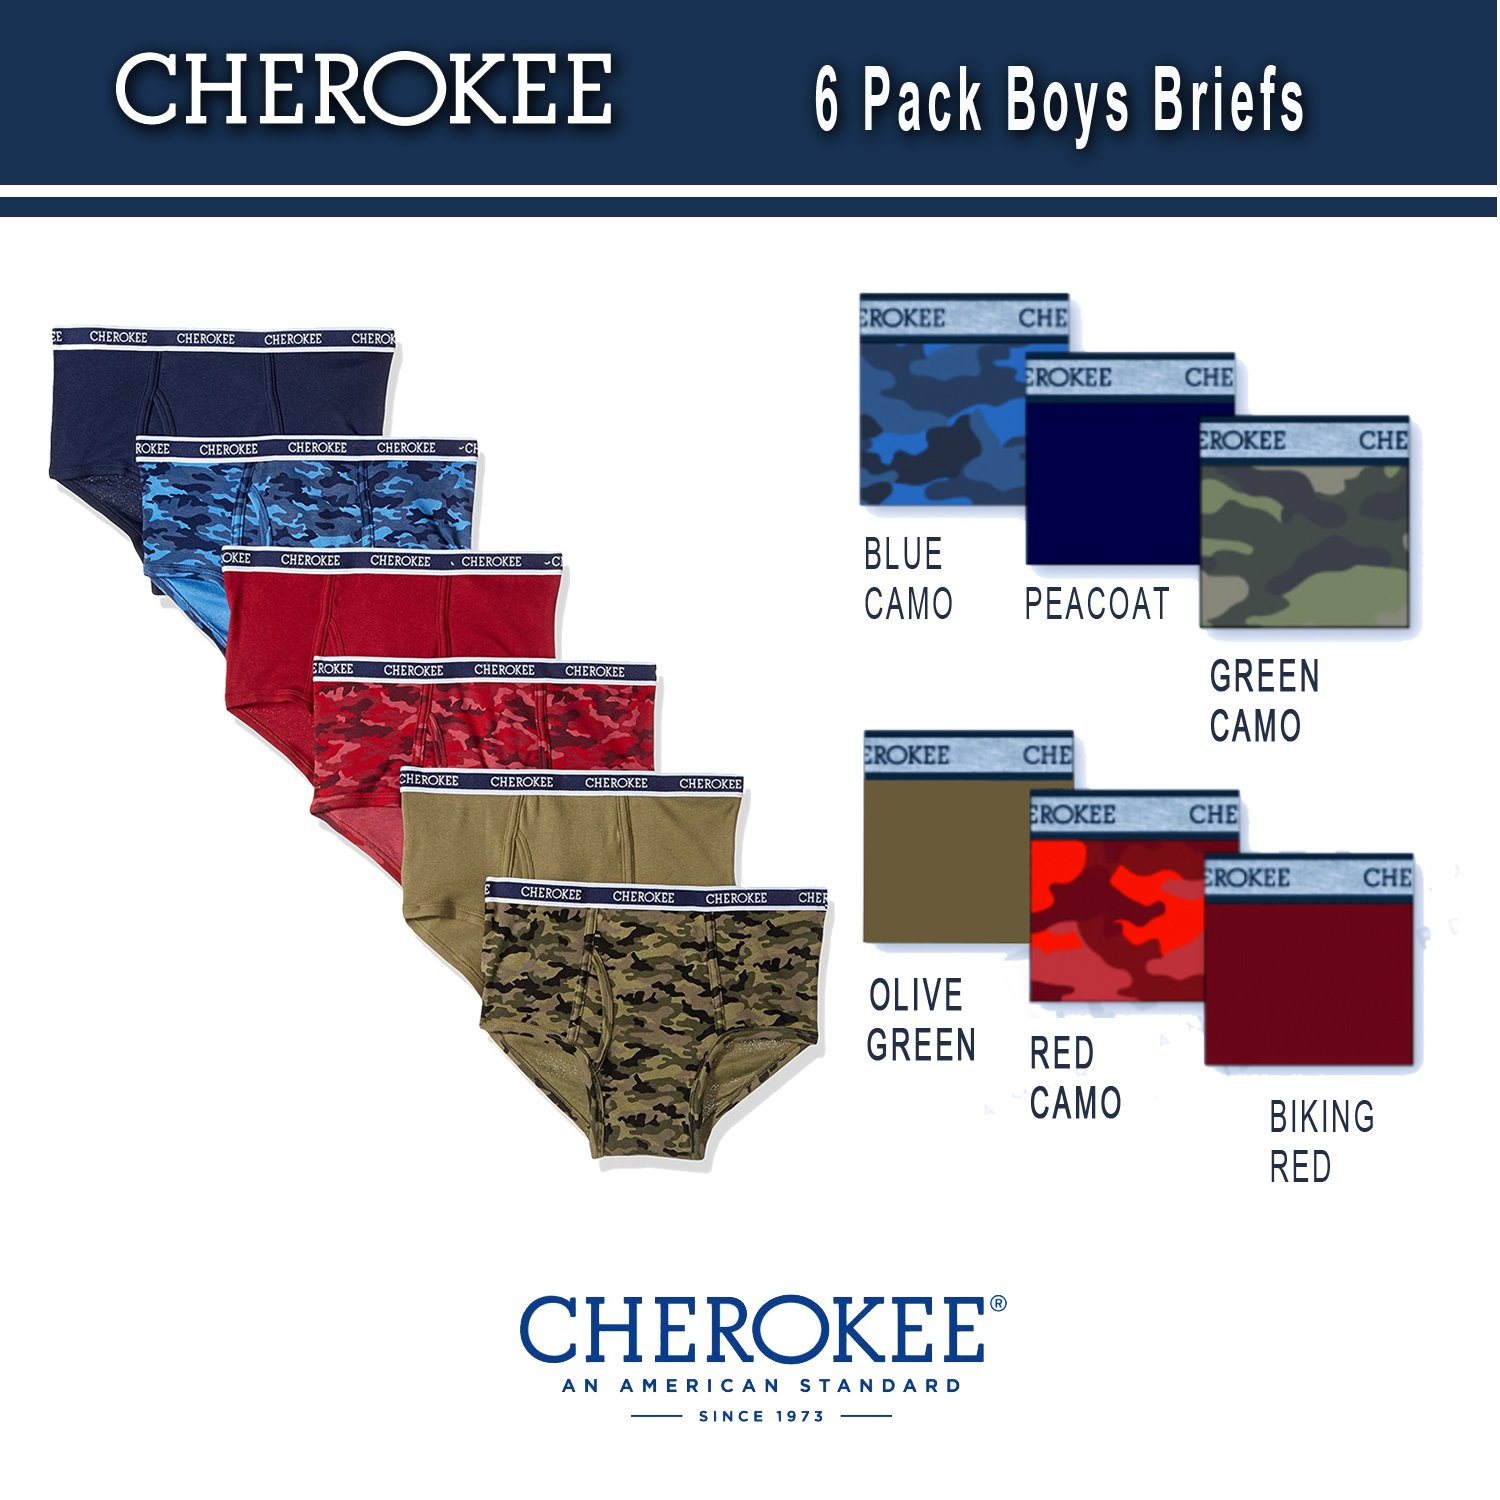 Cherokee Little Boys 6 Pack Brief, Camo/Solid Print Pack, XL by Cherokee (Image #1)